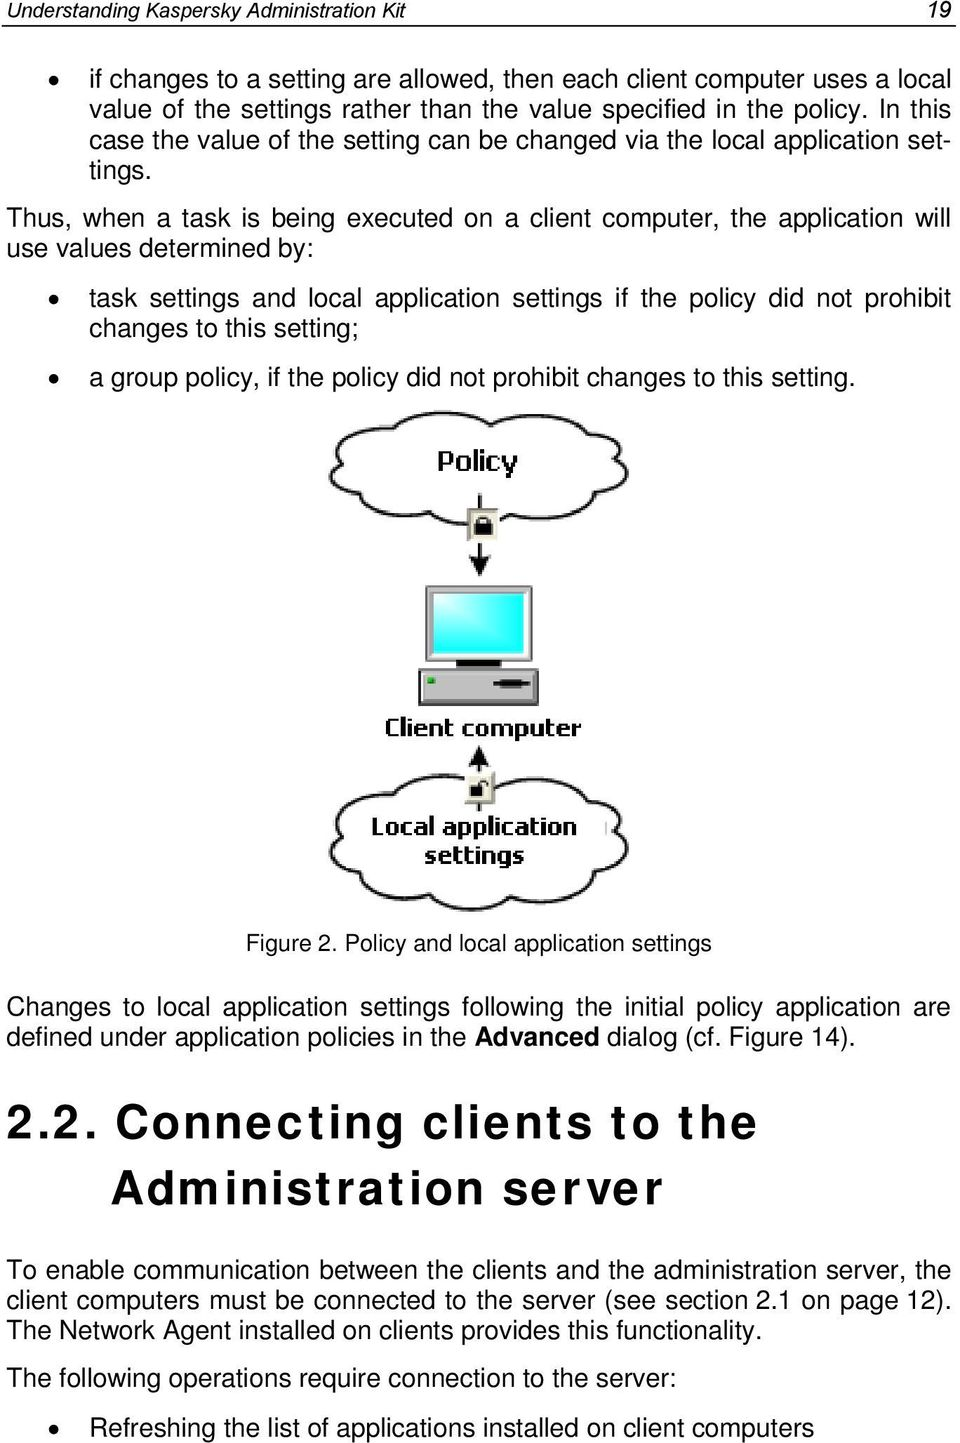 Thus, when a task is being executed on a client computer, the application will use values determined by: task settings and local application settings if the policy did not prohibit changes to this